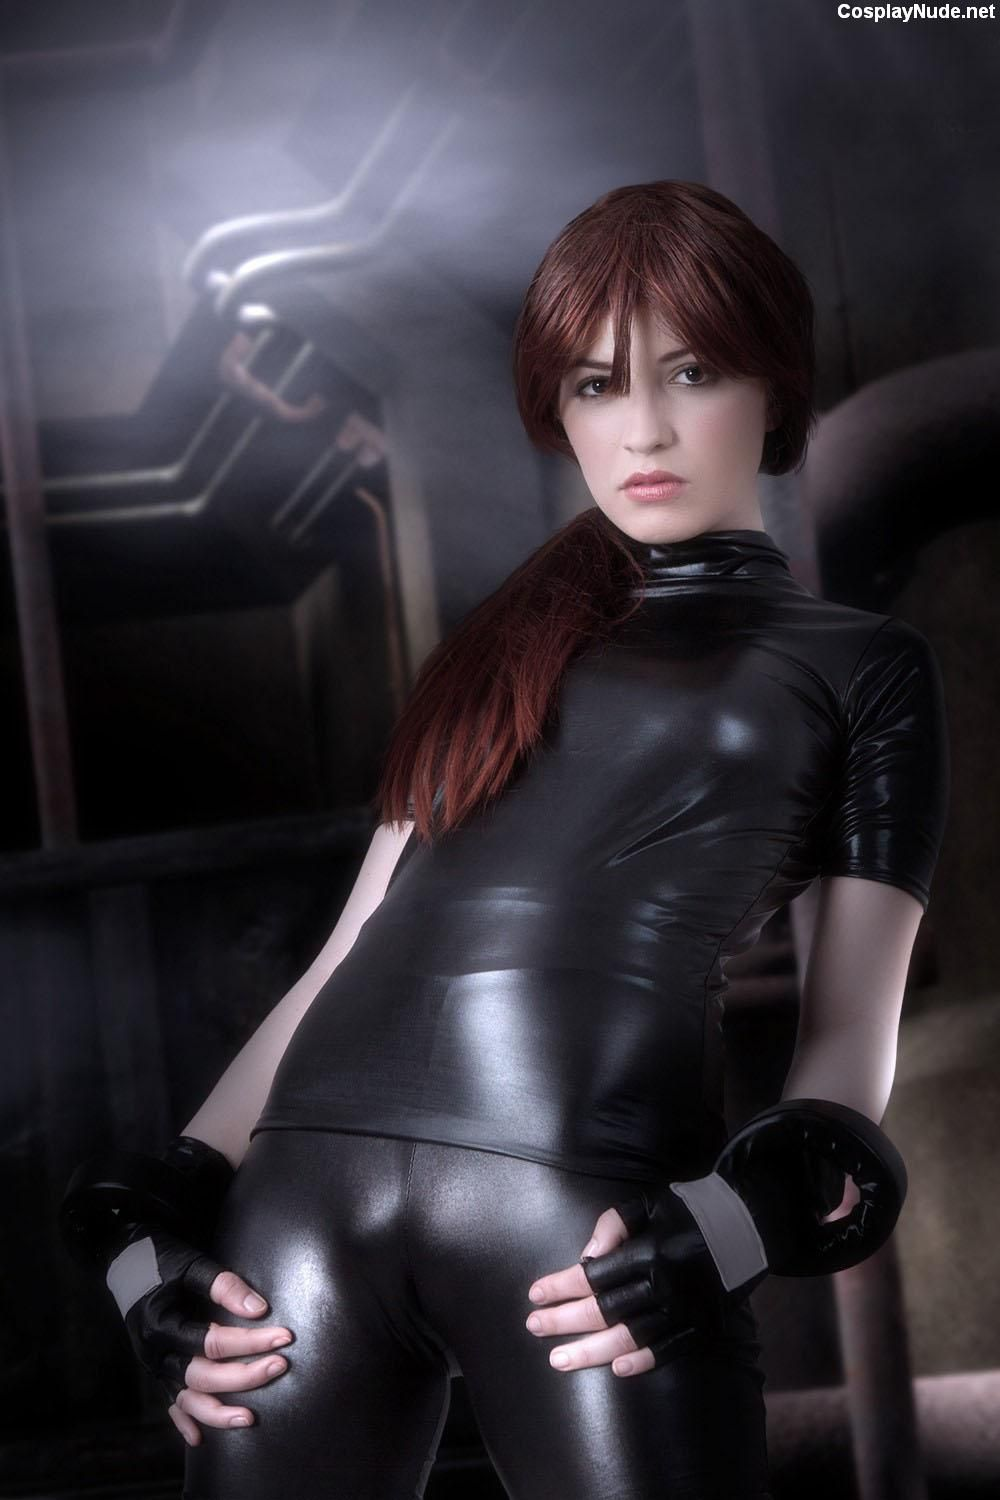 cosplay nude evil Resident redfield claire